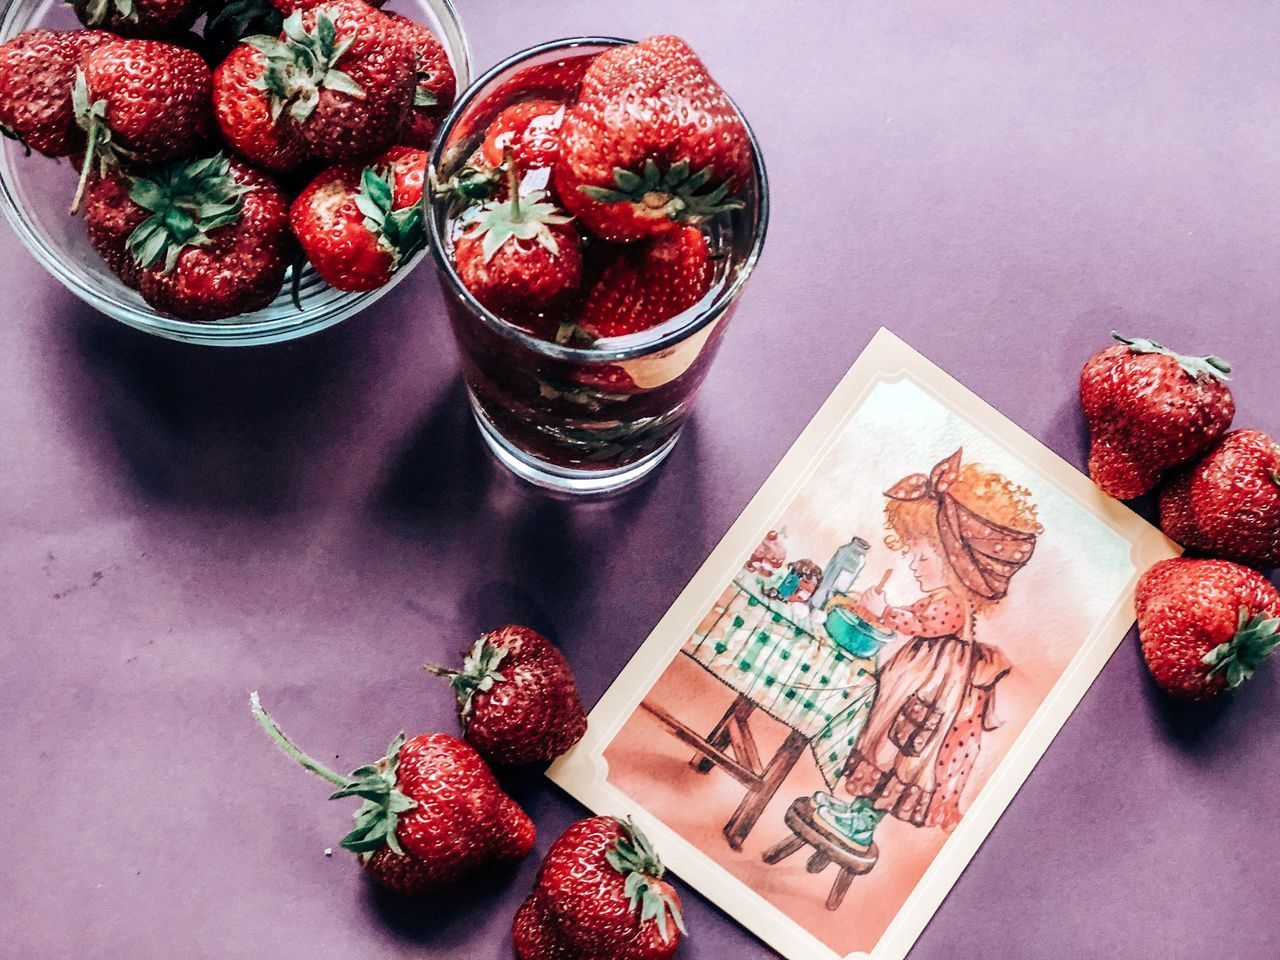 HIGH ANGLE VIEW OF STRAWBERRIES ON GLASS TABLE